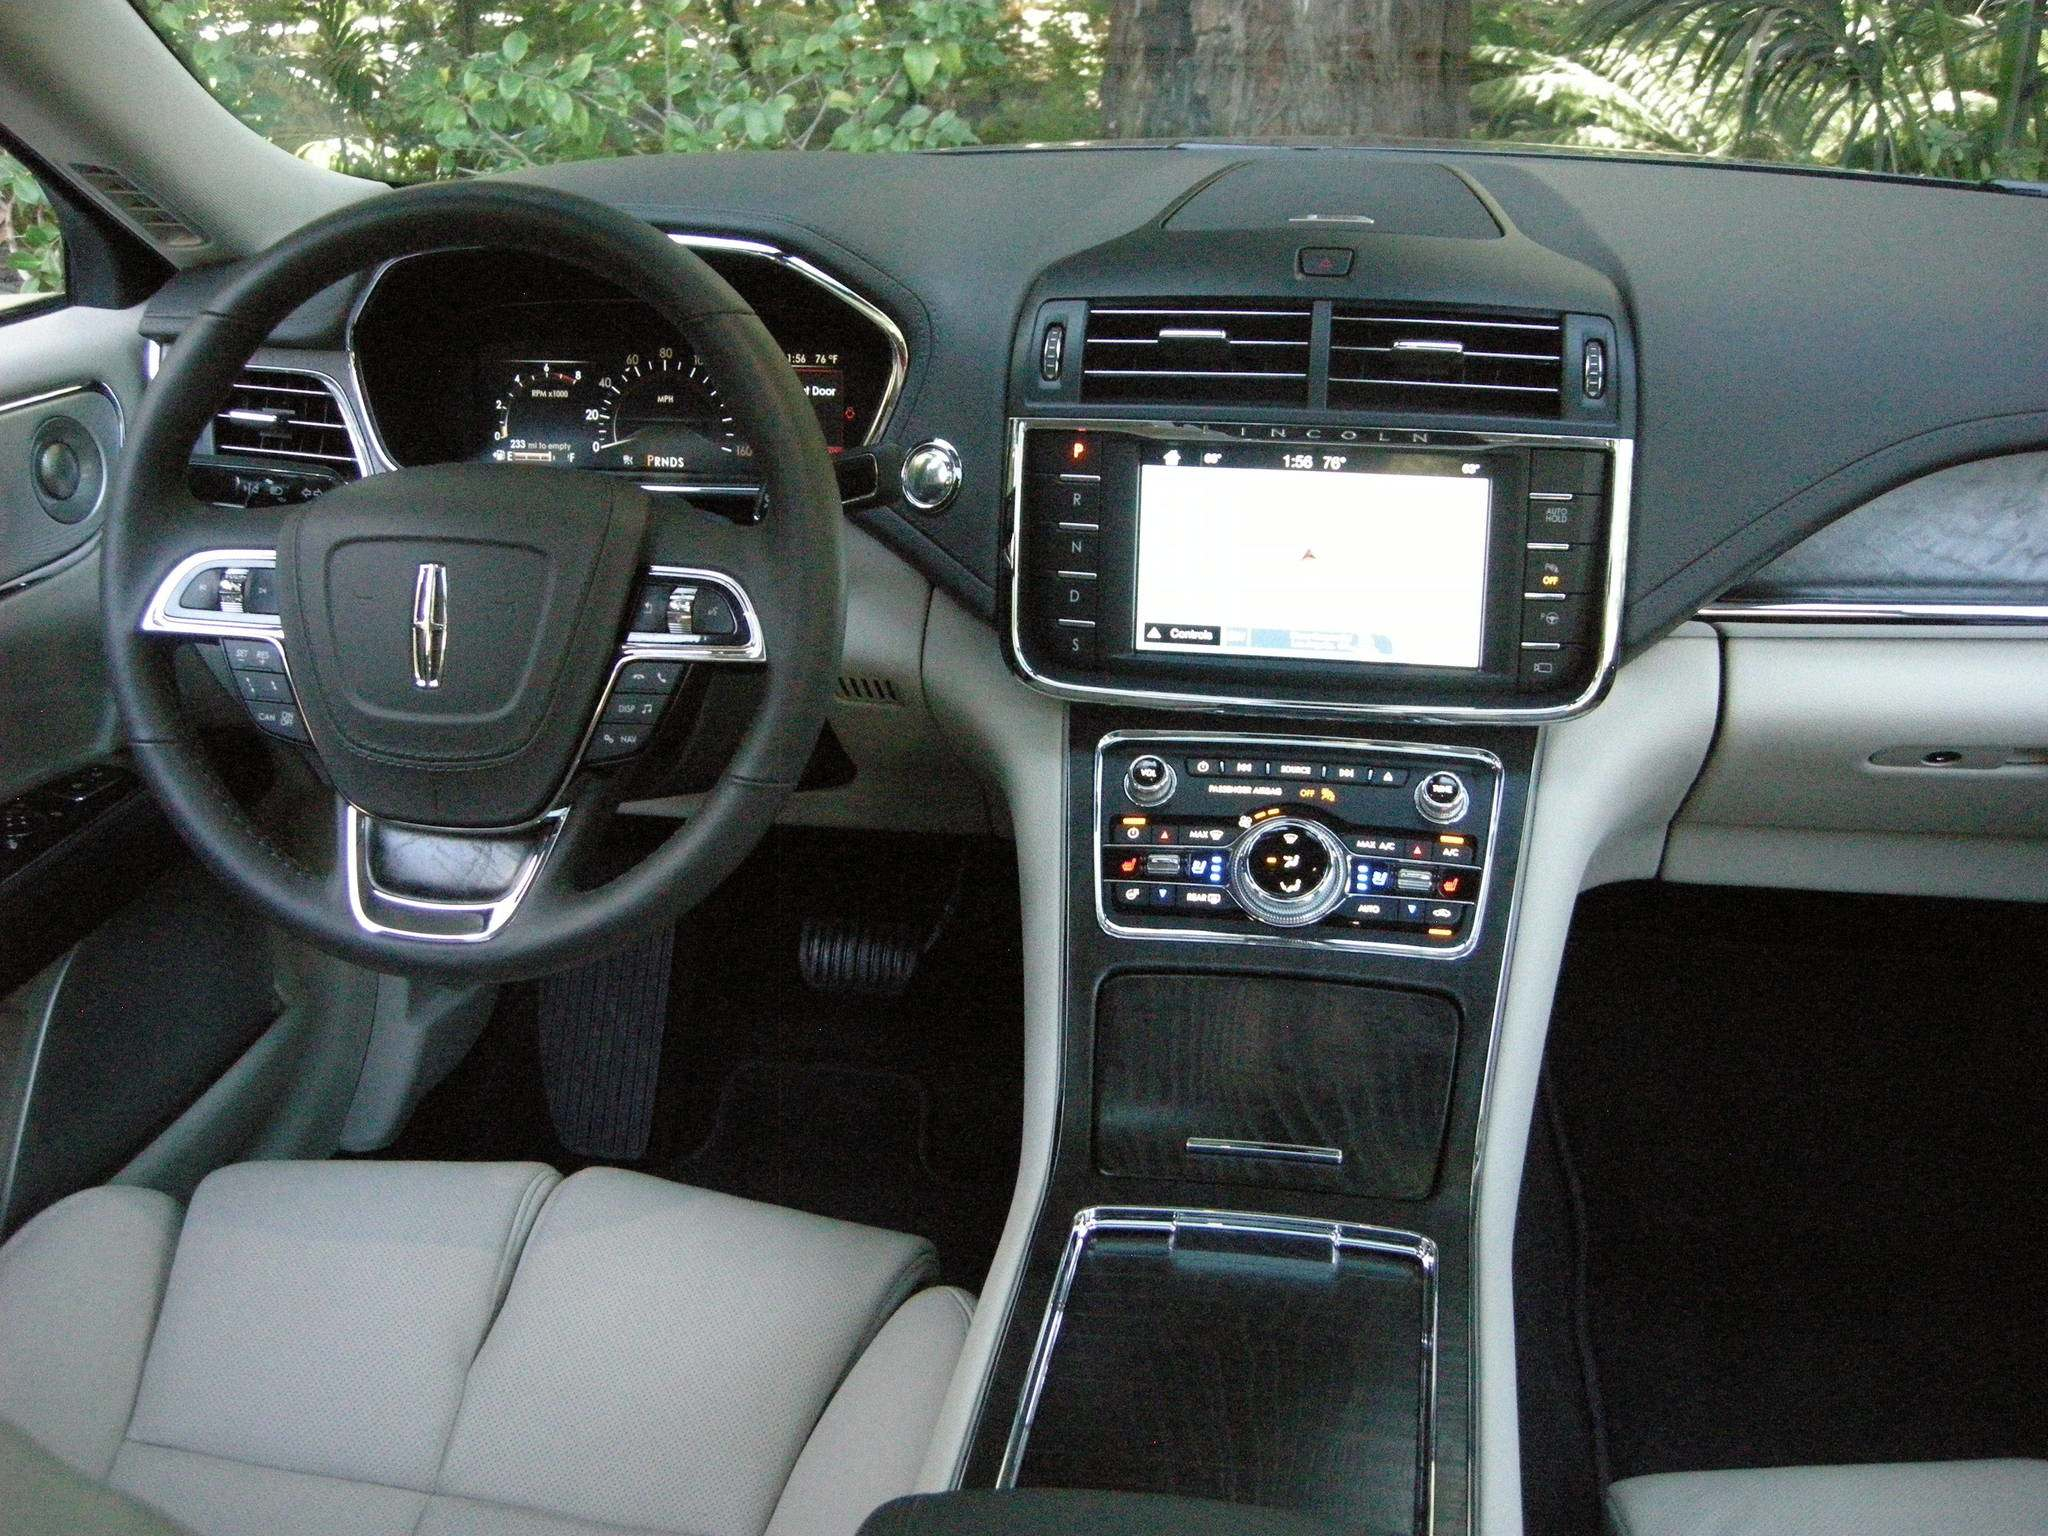 The Lincoln Continental has a bevy of luxury features, including 30-way front seats with massage functions.